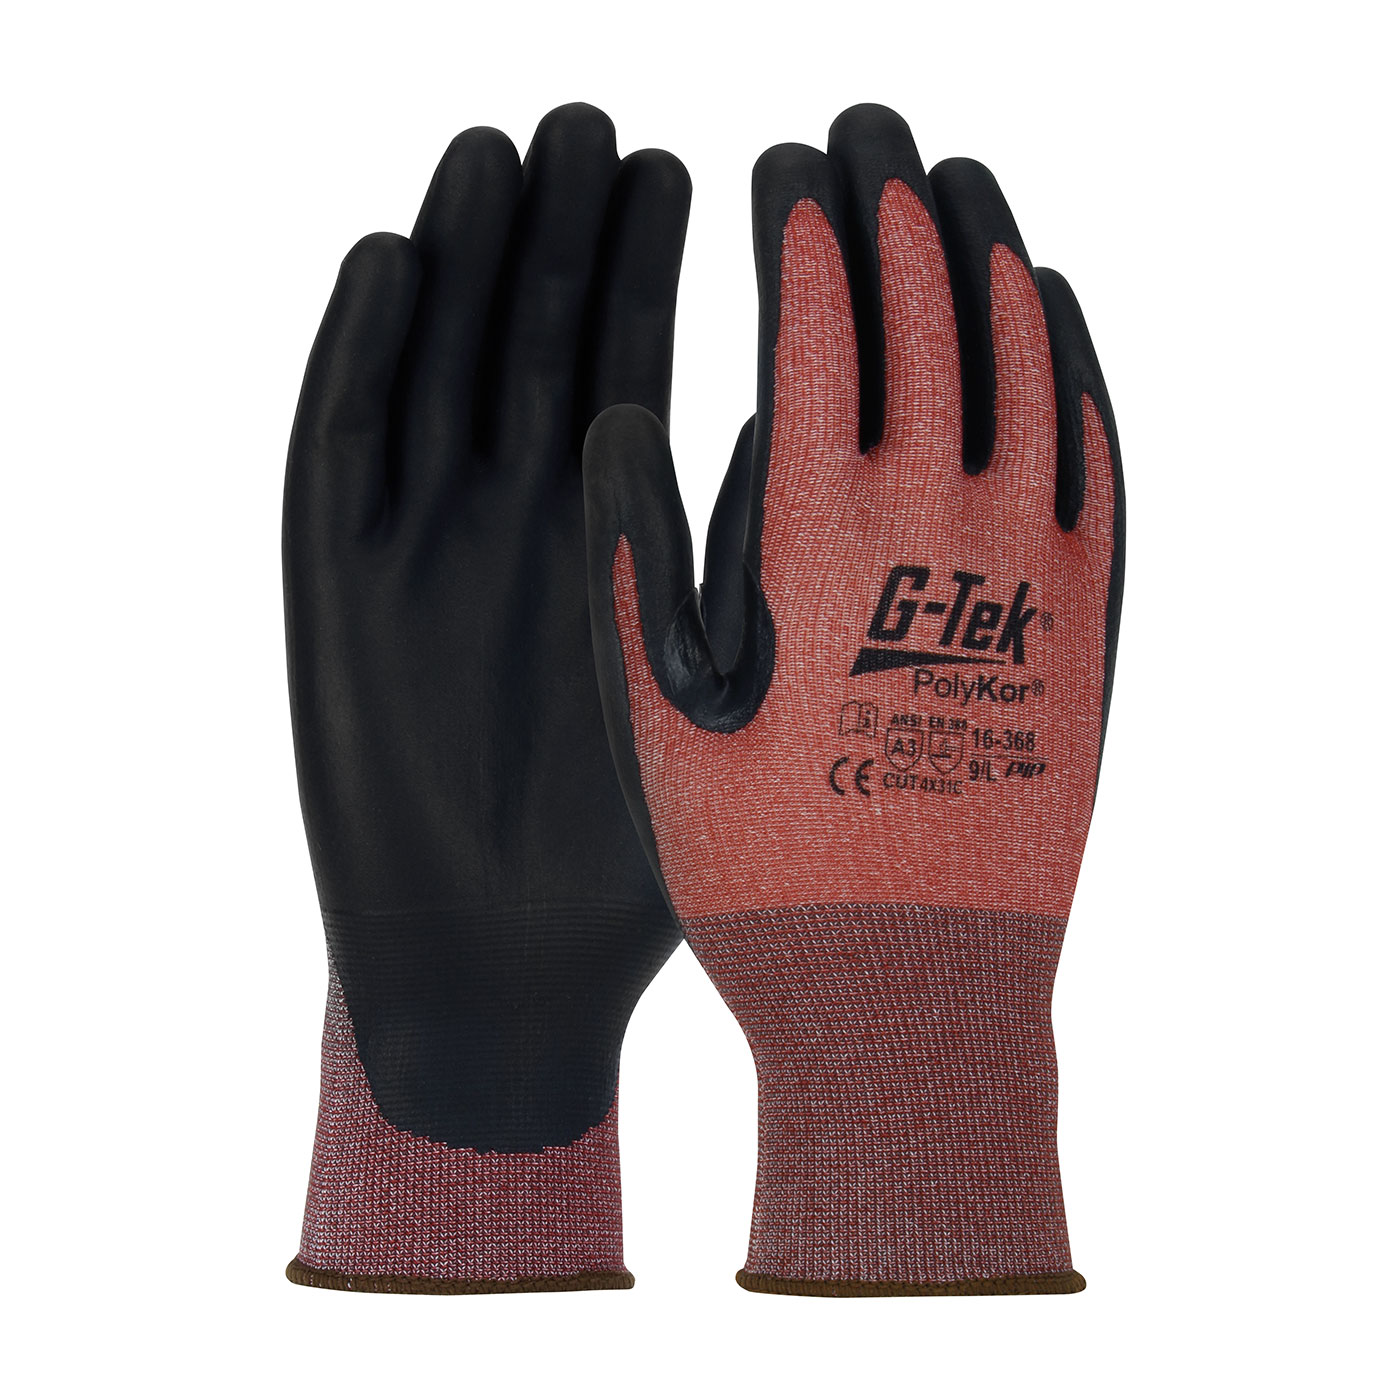 #16-368 PIP® G-Tek® PolyKor® X7™ Seamless Knit PolyKor® X7™ Blended Glove with NeoFoam® Coated Palm & Fingers - Touchscreen Compatible